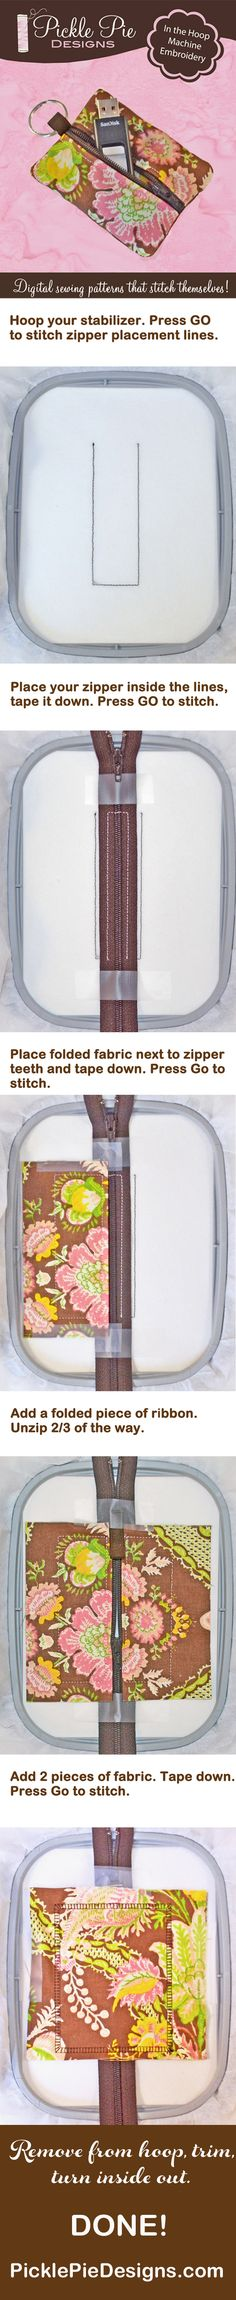 "Heard the buzz about ""in the hoop"" machine embroidery?! If you own an embroidery machine, you can make this FAST, FUN and EASY zipper case project - even if you don't know how to sew!!! Check out PicklePieDesigns.com for your new addiction! #machinembroidery #inthehoop"